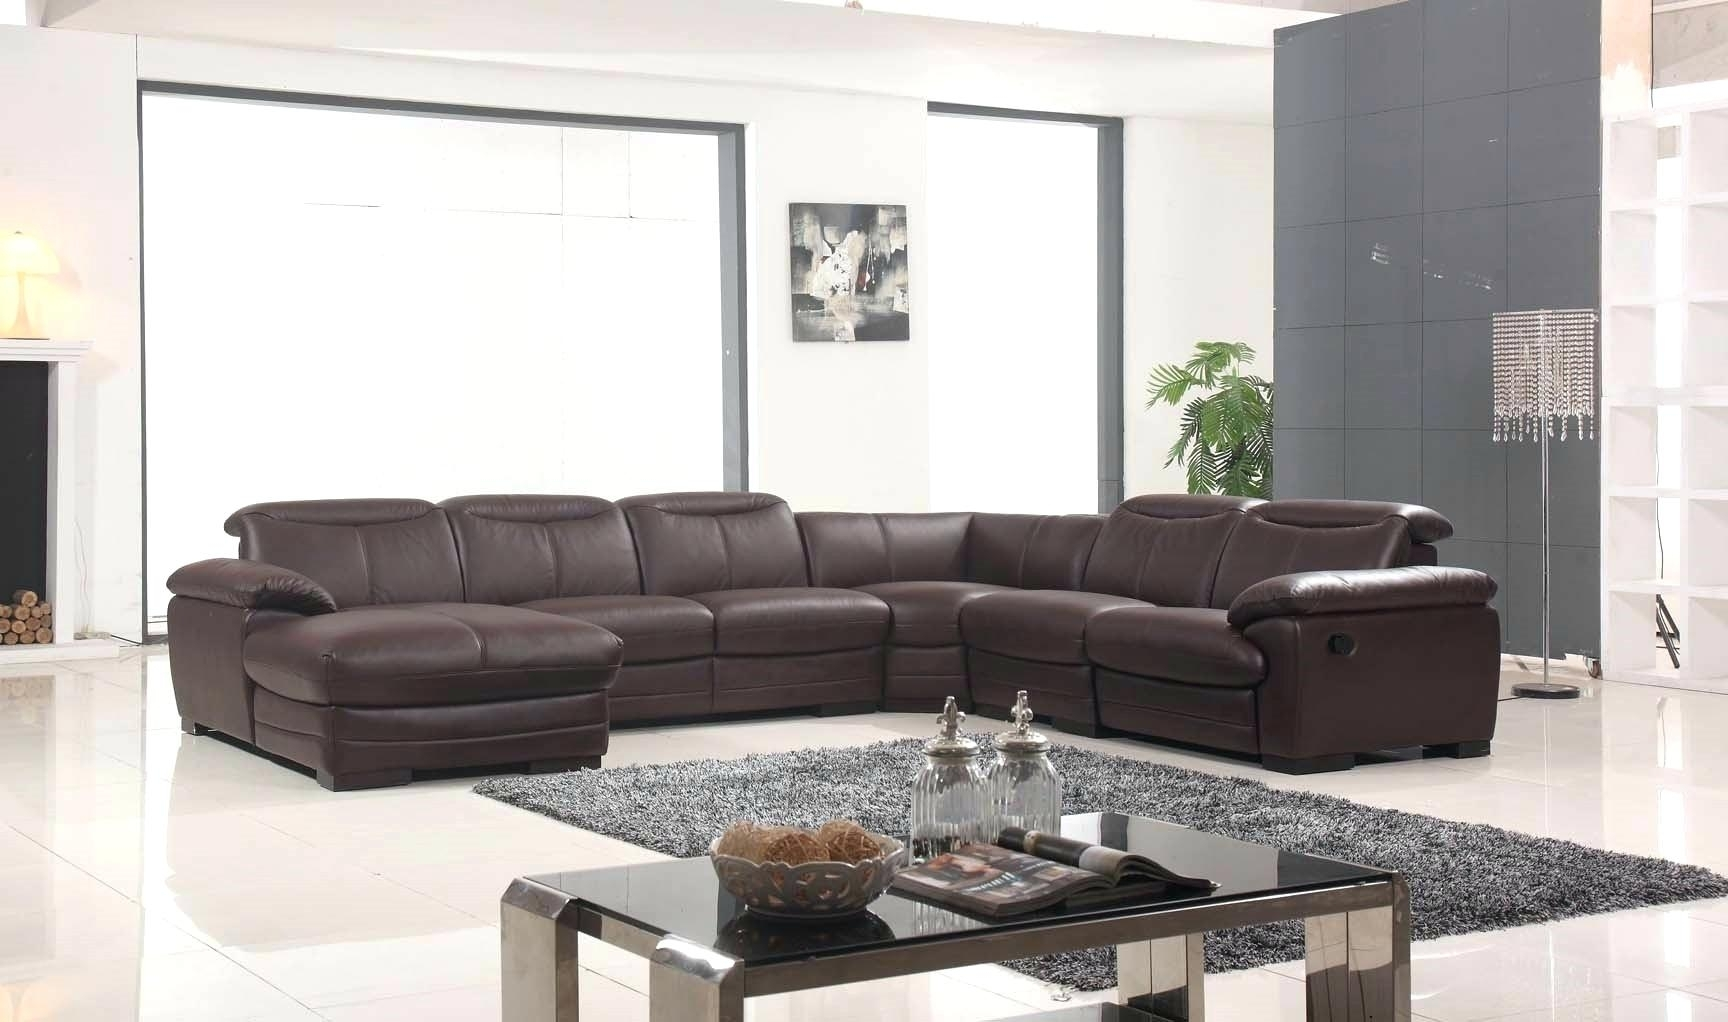 Extra Large Sectional Sofas Leather Couches With Recliners Modern intended for Extra Large U Shaped Sectionals (Image 3 of 15)